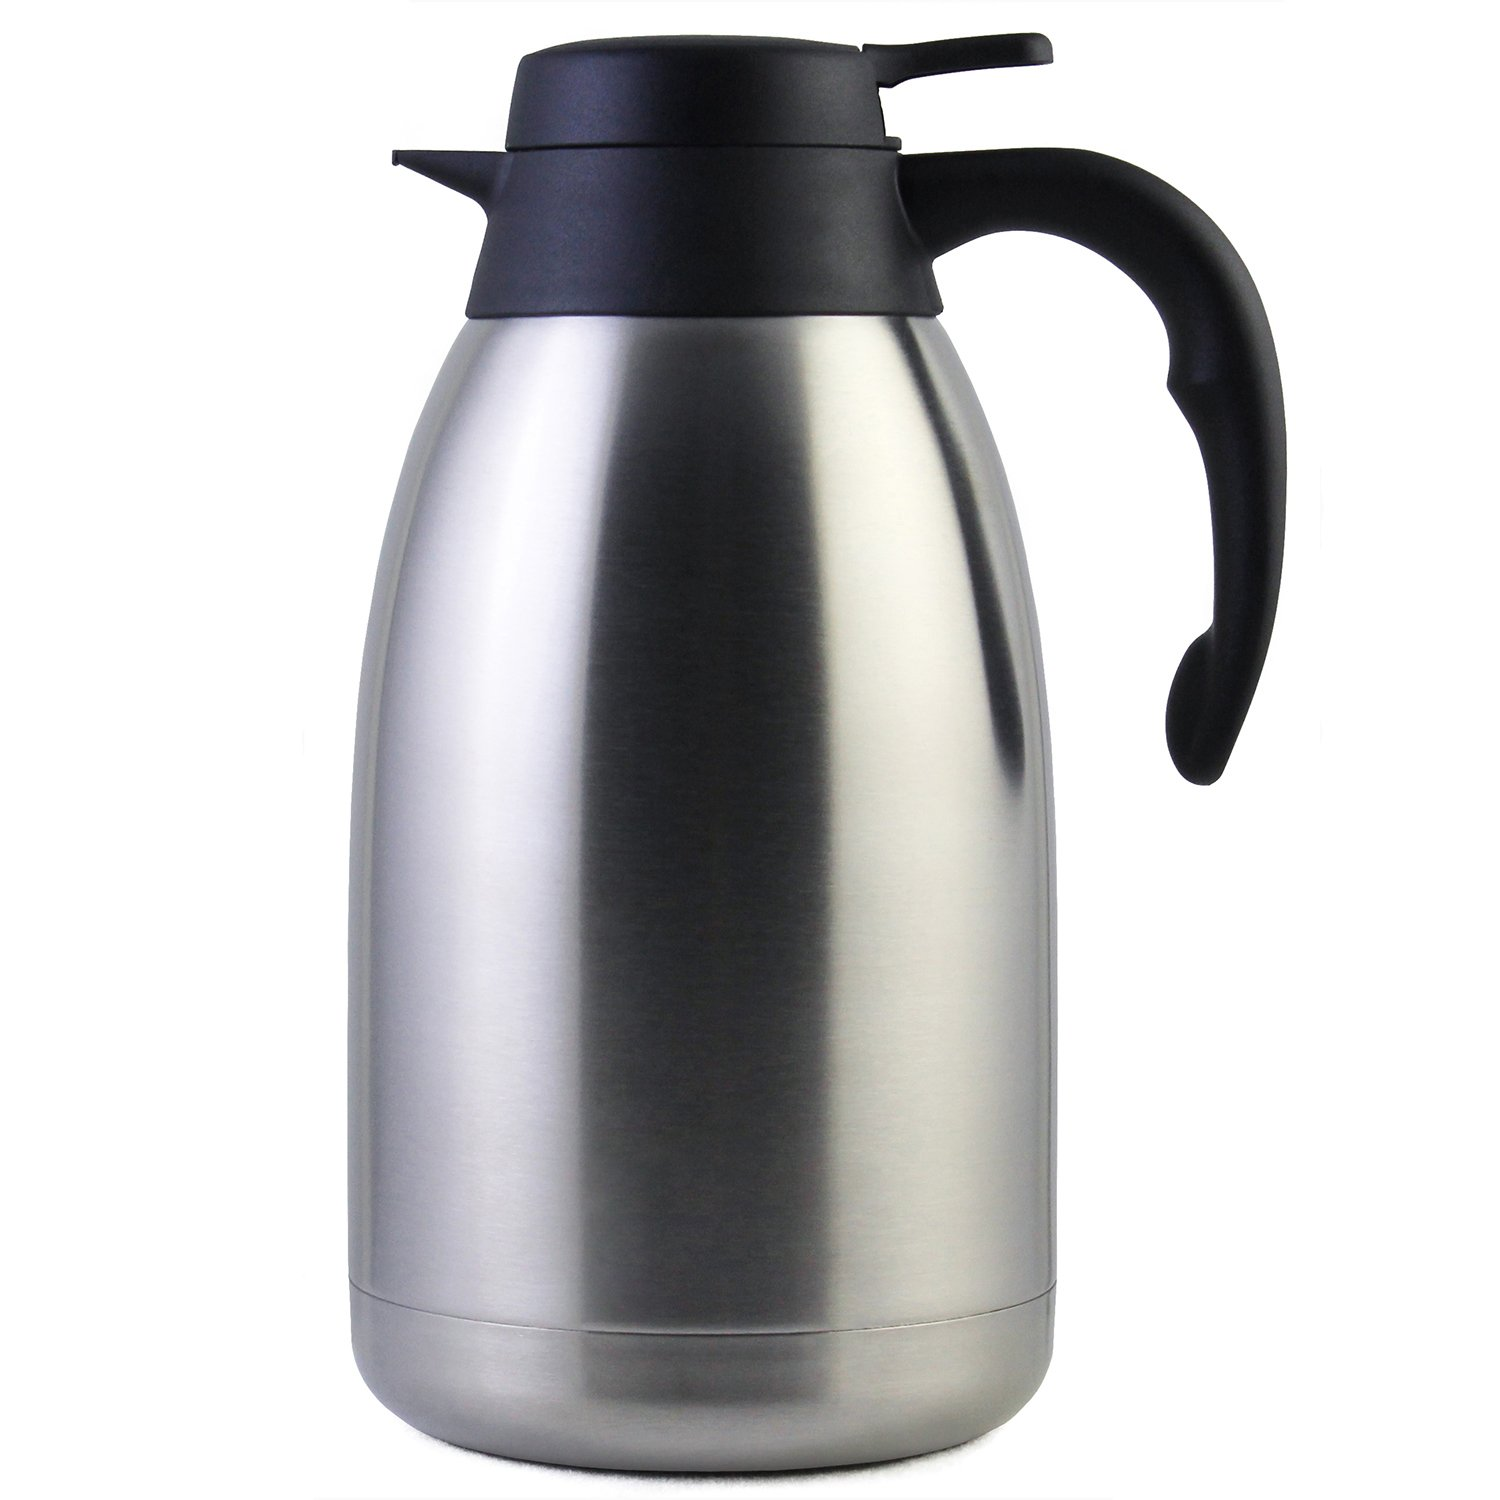 68 Oz Stainless Steel Thermal Coffee Carafe/Double Walled Vacuum Thermos / 12 Hour Heat Retention / 2 Litre by Cresimo by Cresimo